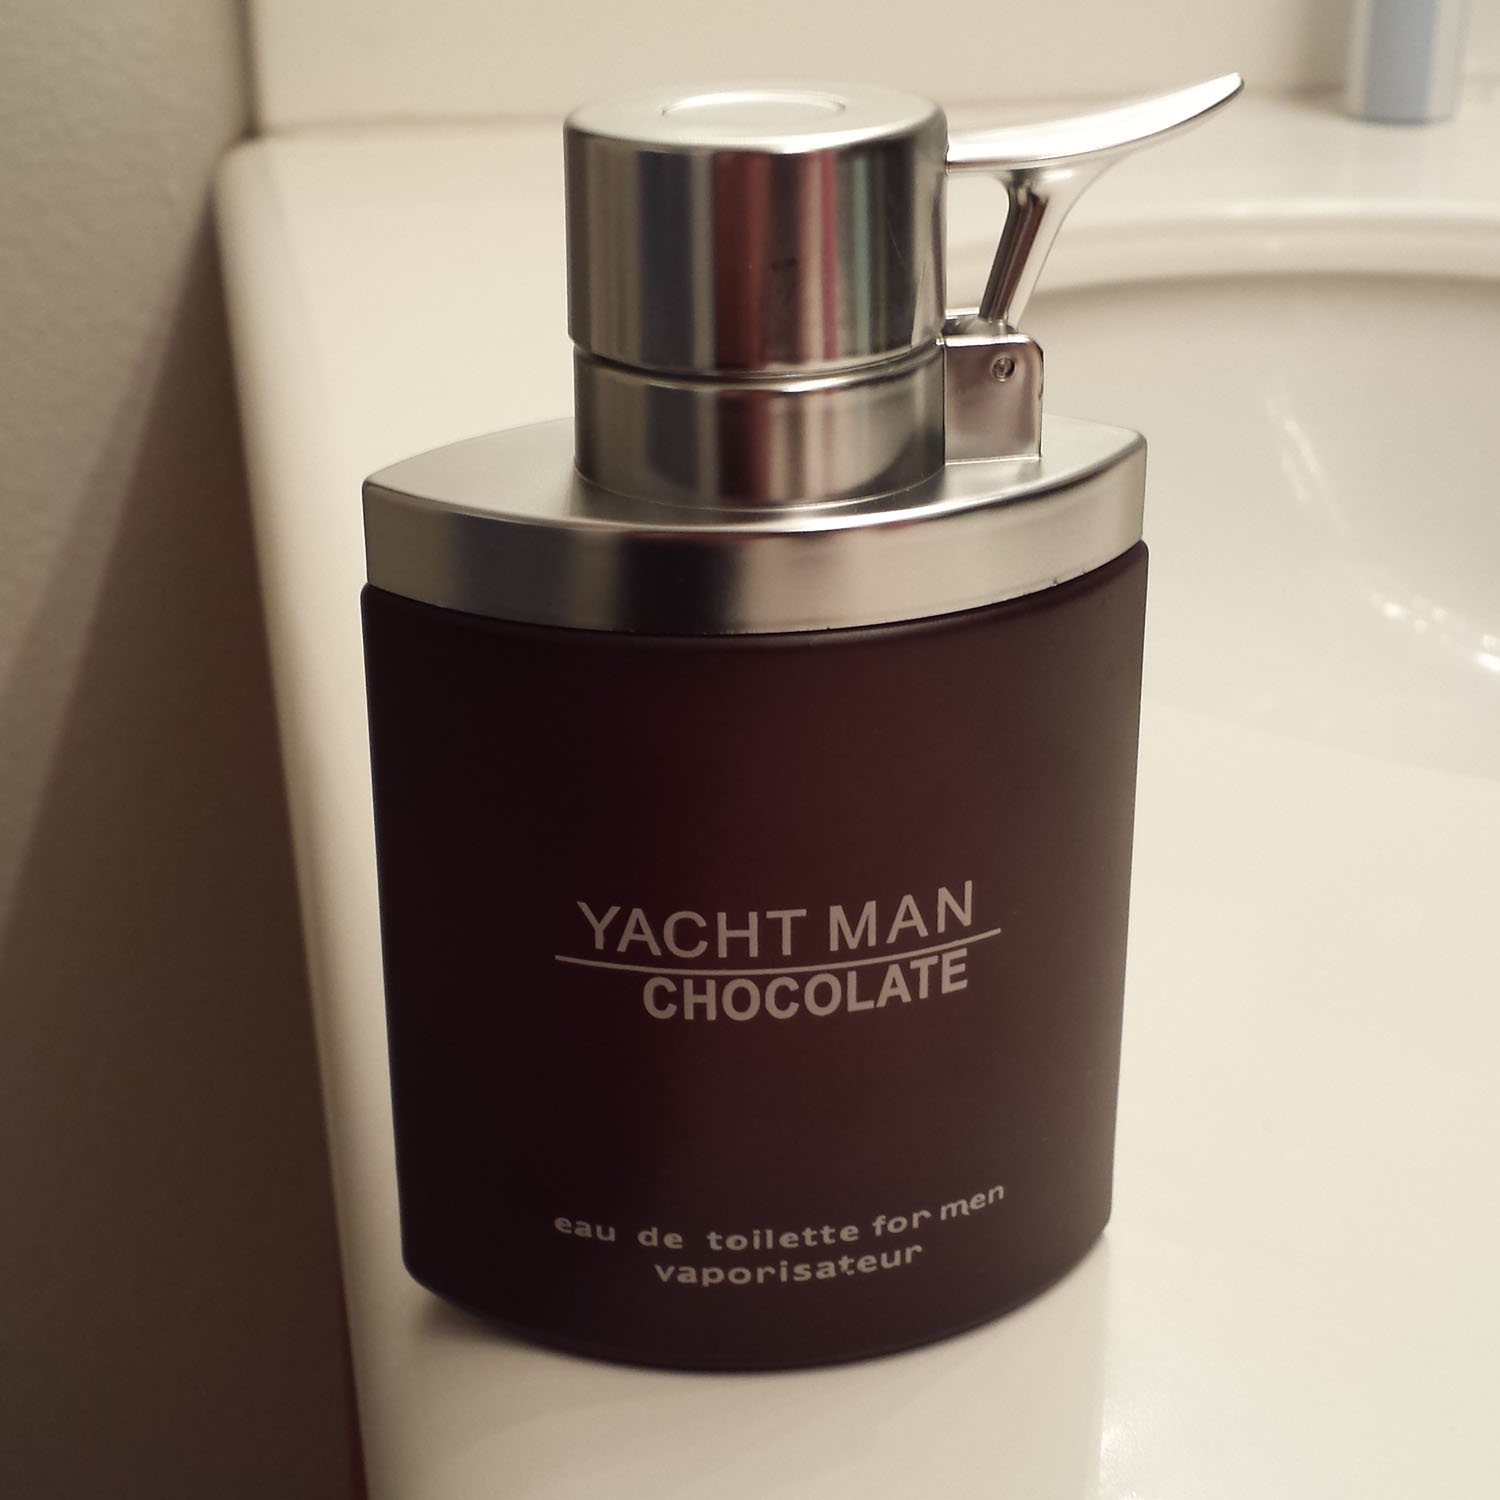 c7c335d7b9 Yacht Man Chocolate Cologne | Chocolate I Have Known